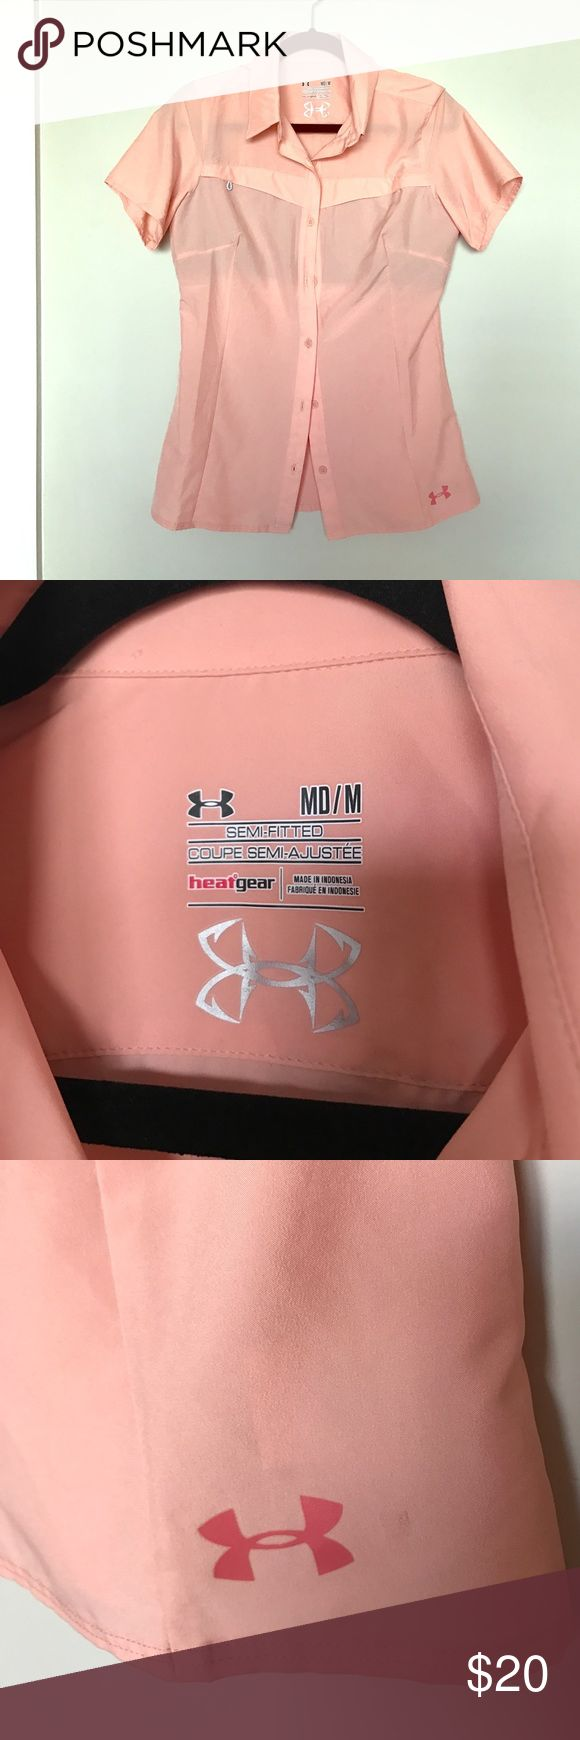 Peach Under Armour Fishing Shirt Pretty peach color! UA brand Fishing Shirt. GUC. Shows small signs of wear but overall good condition with no hole or rips etc. Coming from a pet friendly home of one adorable little Pomsky named Lulu :) Under Armour Tops Button Down Shirts